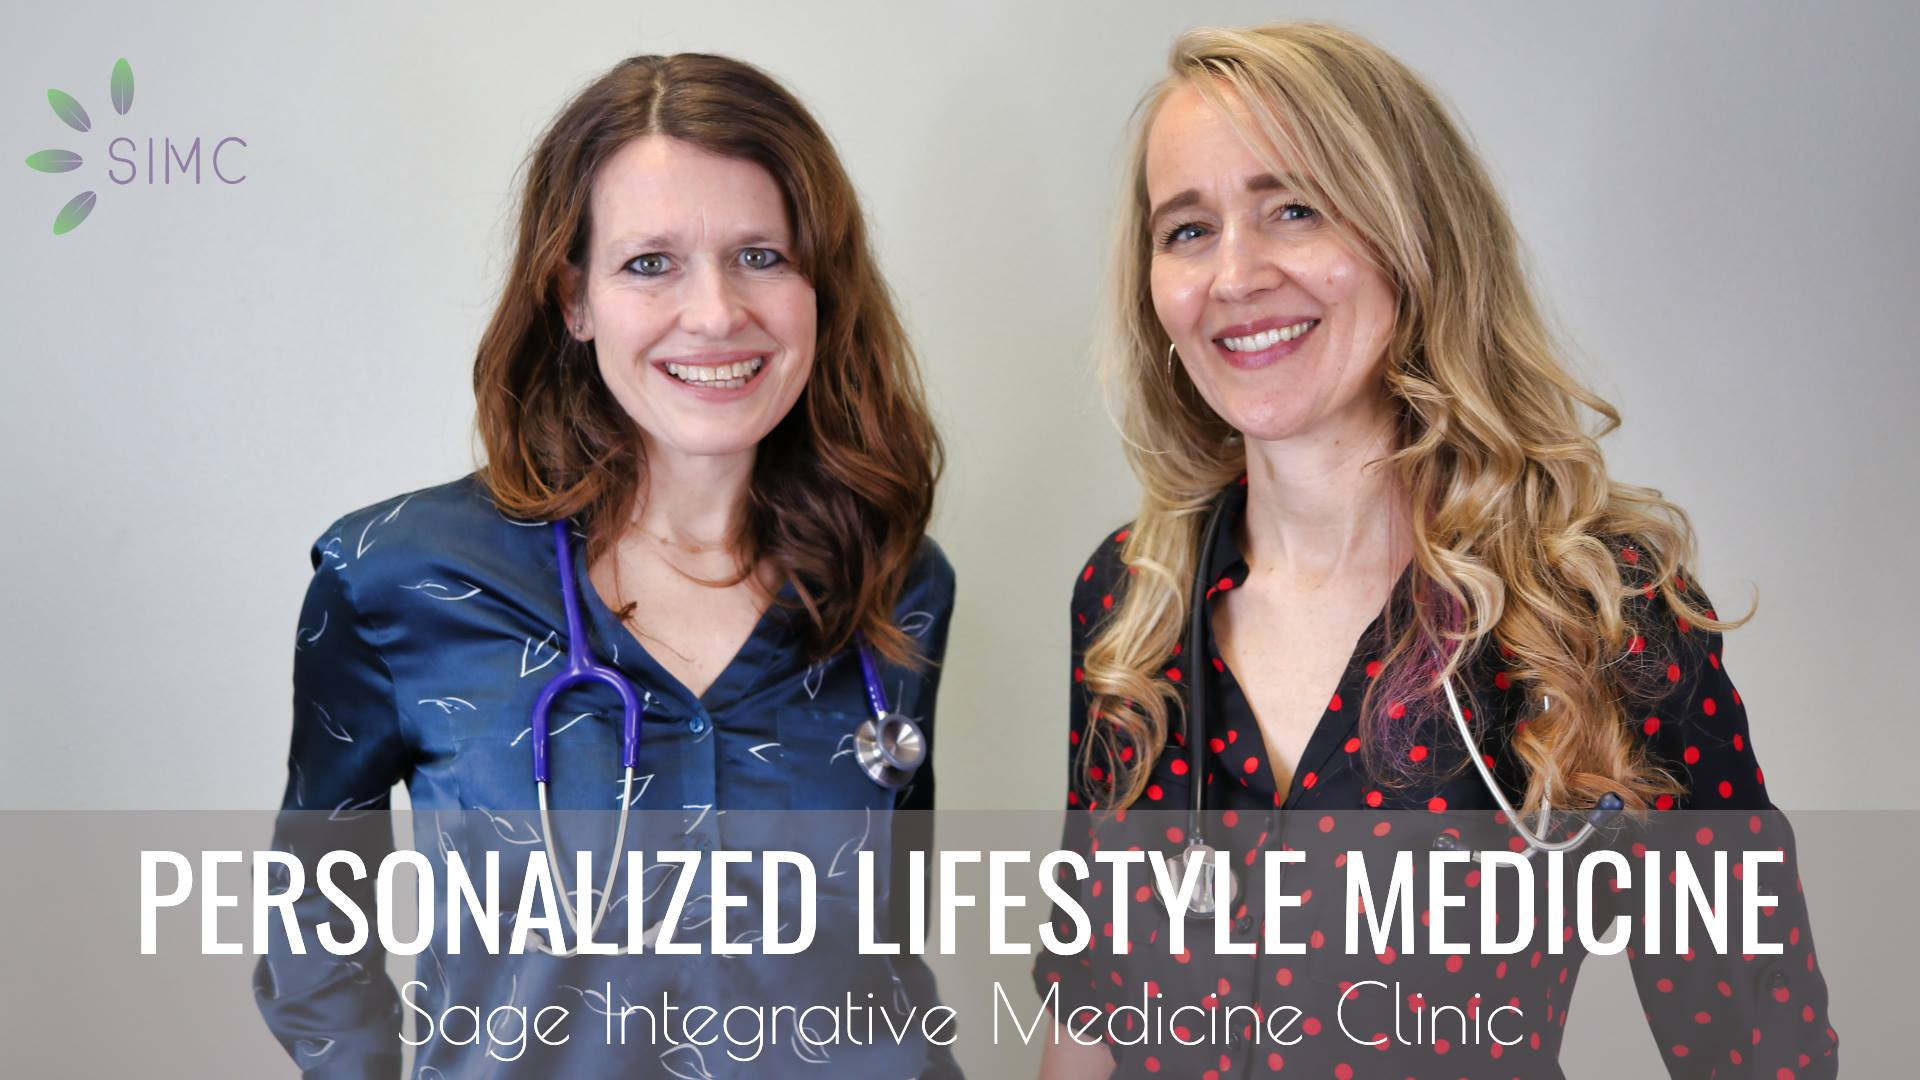 Sage Integrative Medicine Clinic - Your Primary Care And